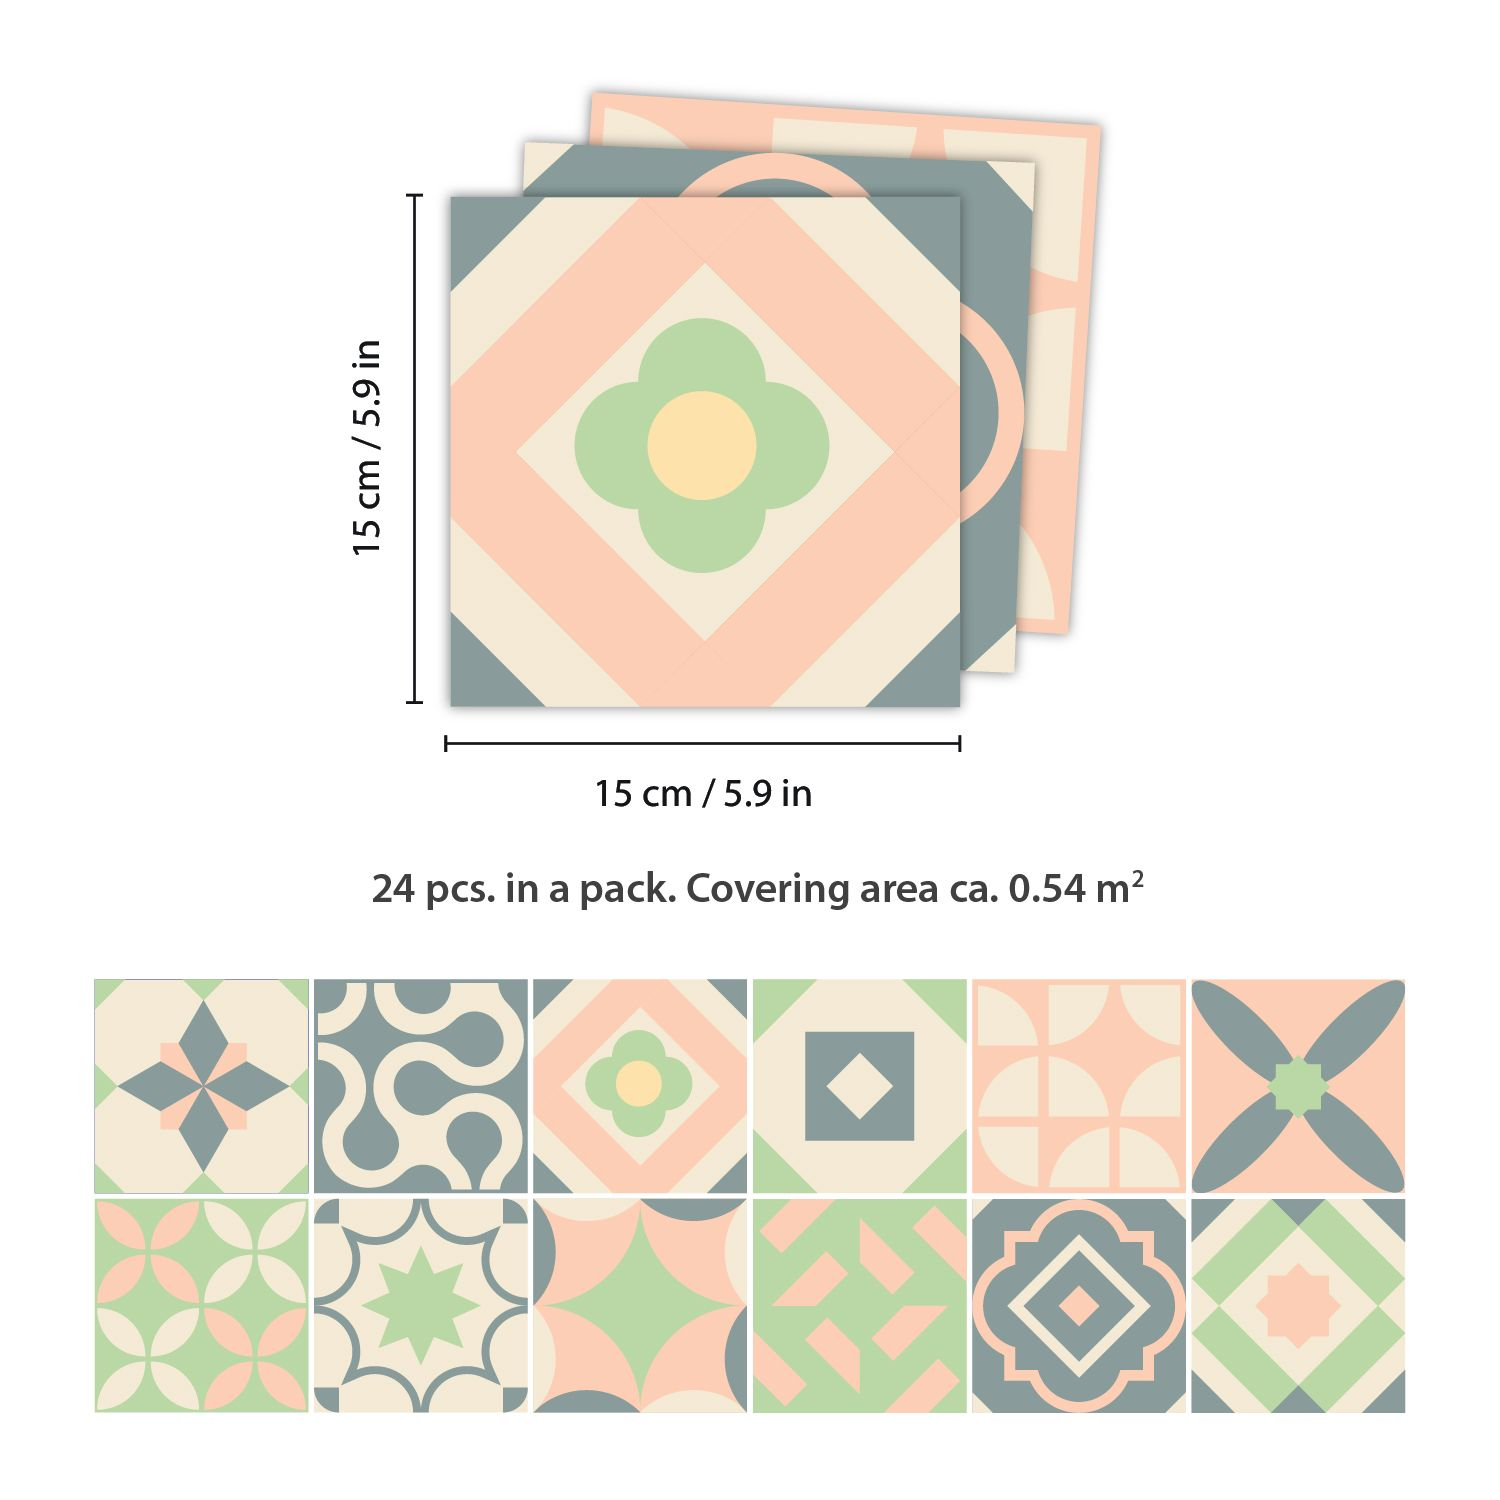 Kansas Baby Rose and Pastel Green Wall Tile Sticker Set - 15 x 15 cm (6 x 6 in) - 24 pcs, DIY Art, Home Decorations, Decals, Kitchen Decor, Bathroom Ideas